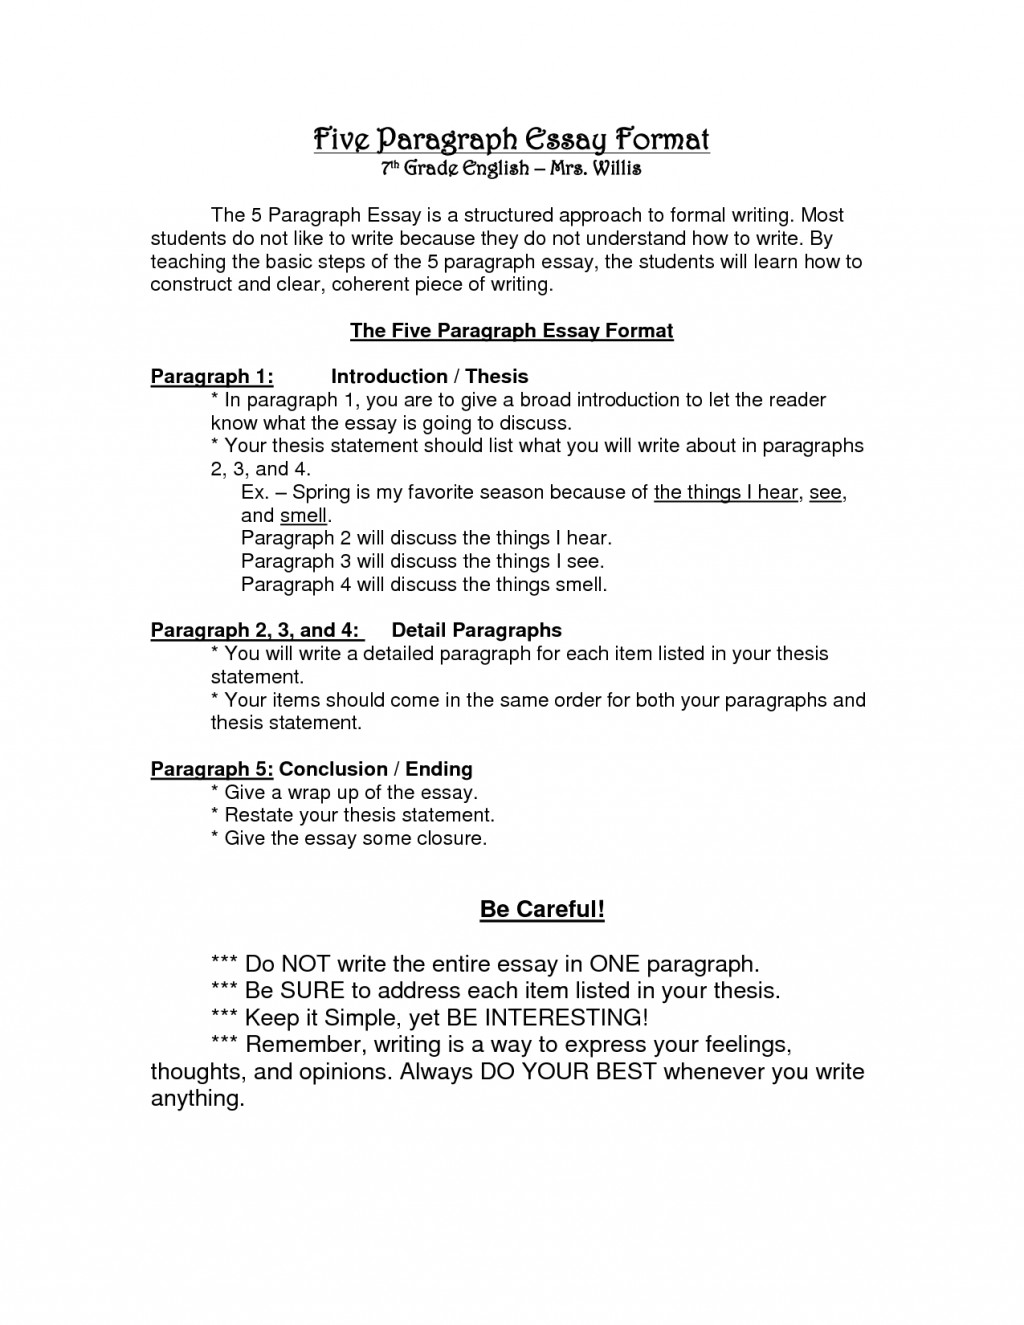 025 Paragraph Essay Outline Template Formats 96536 Fearsome 5 Pdf Persuasive Word Large